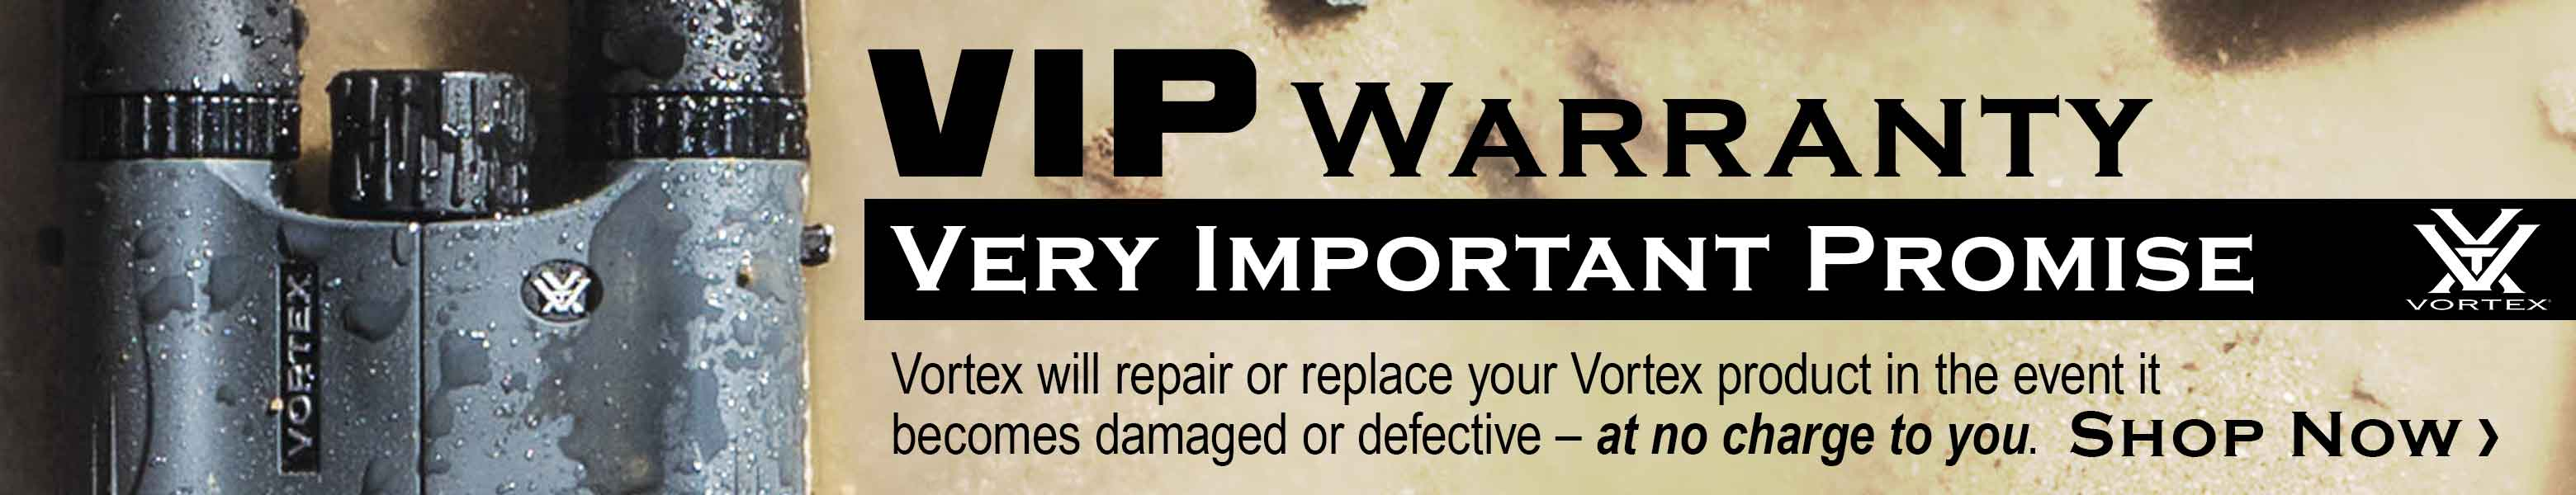 VIP Warranty – Very Important Promise